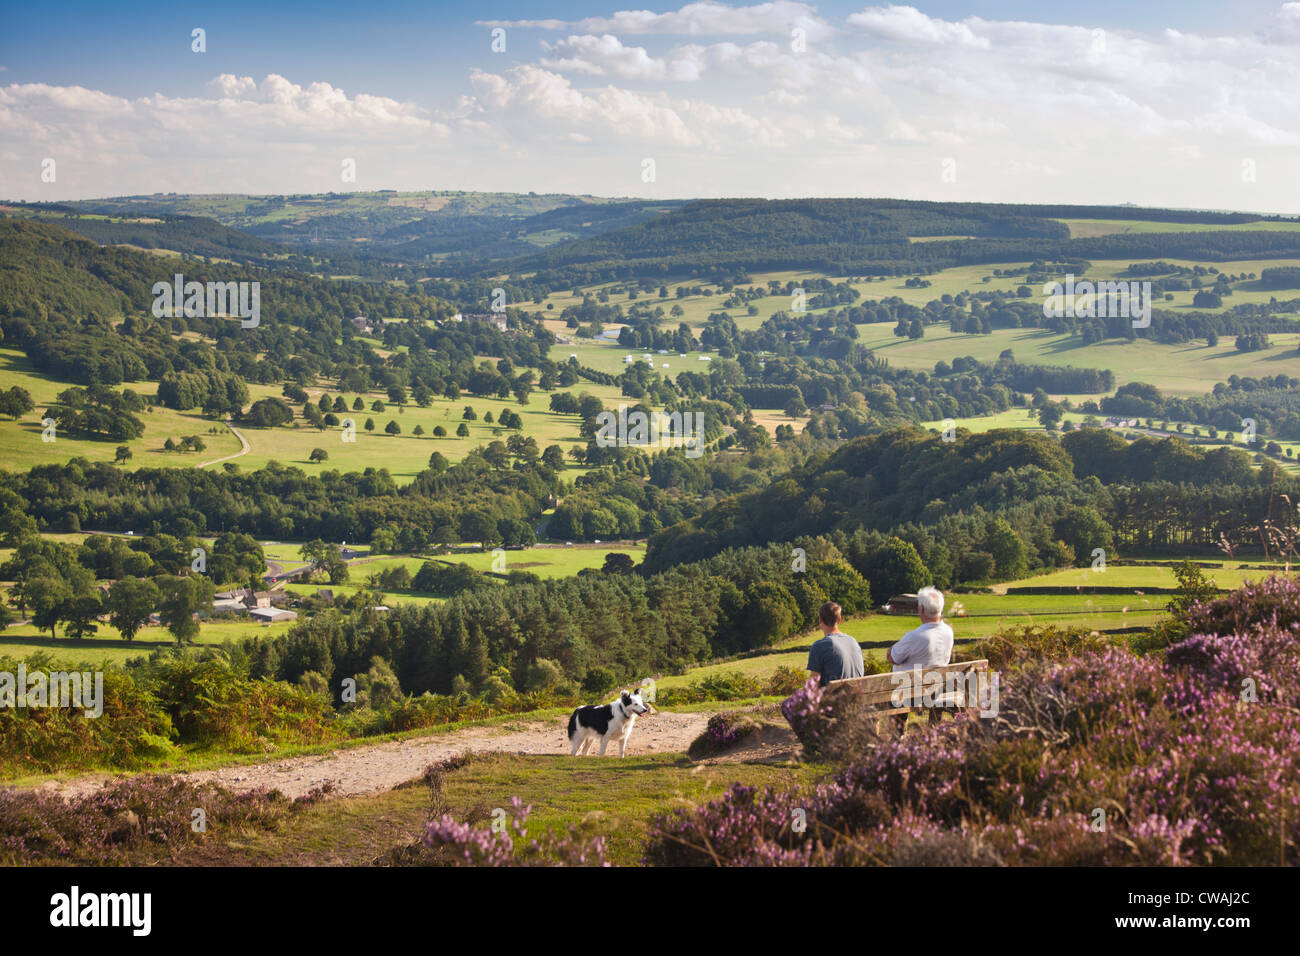 Walkers admire the view from Baslow Edge over the Derwent Valley and Chatsworth Park, Derbyshire, England, UK - Stock Image